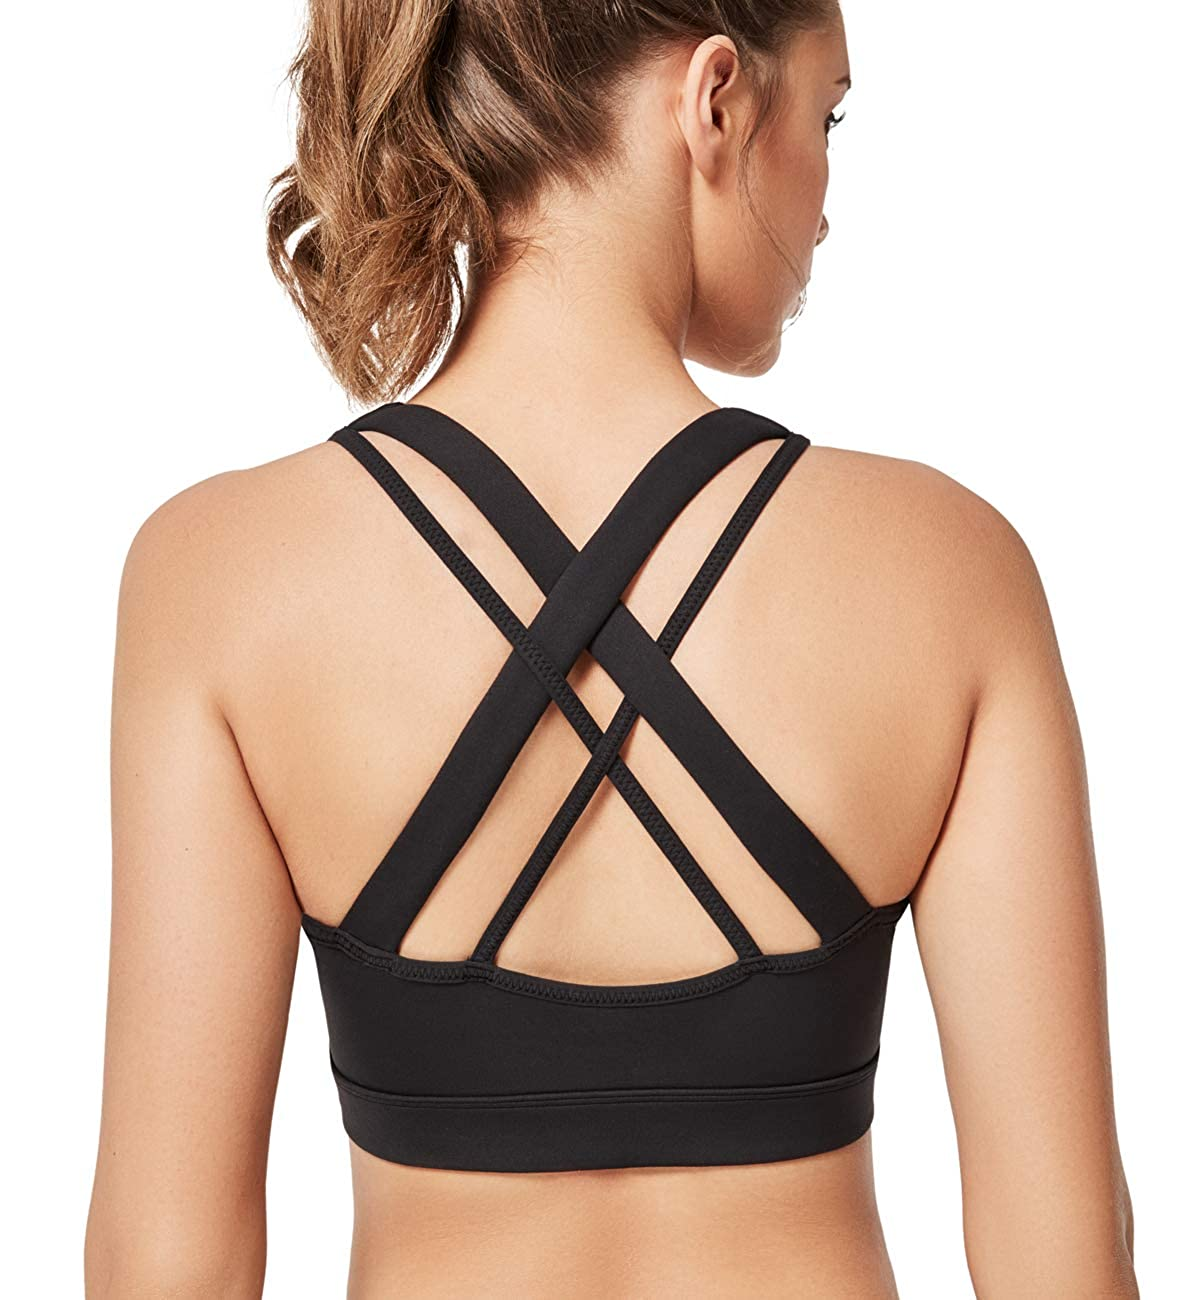 1c92b571 Yvette Low Impact Criss Cross X Back Wireless Plus Size Sports Bras for  Large Busted Women in Yoga Pilates